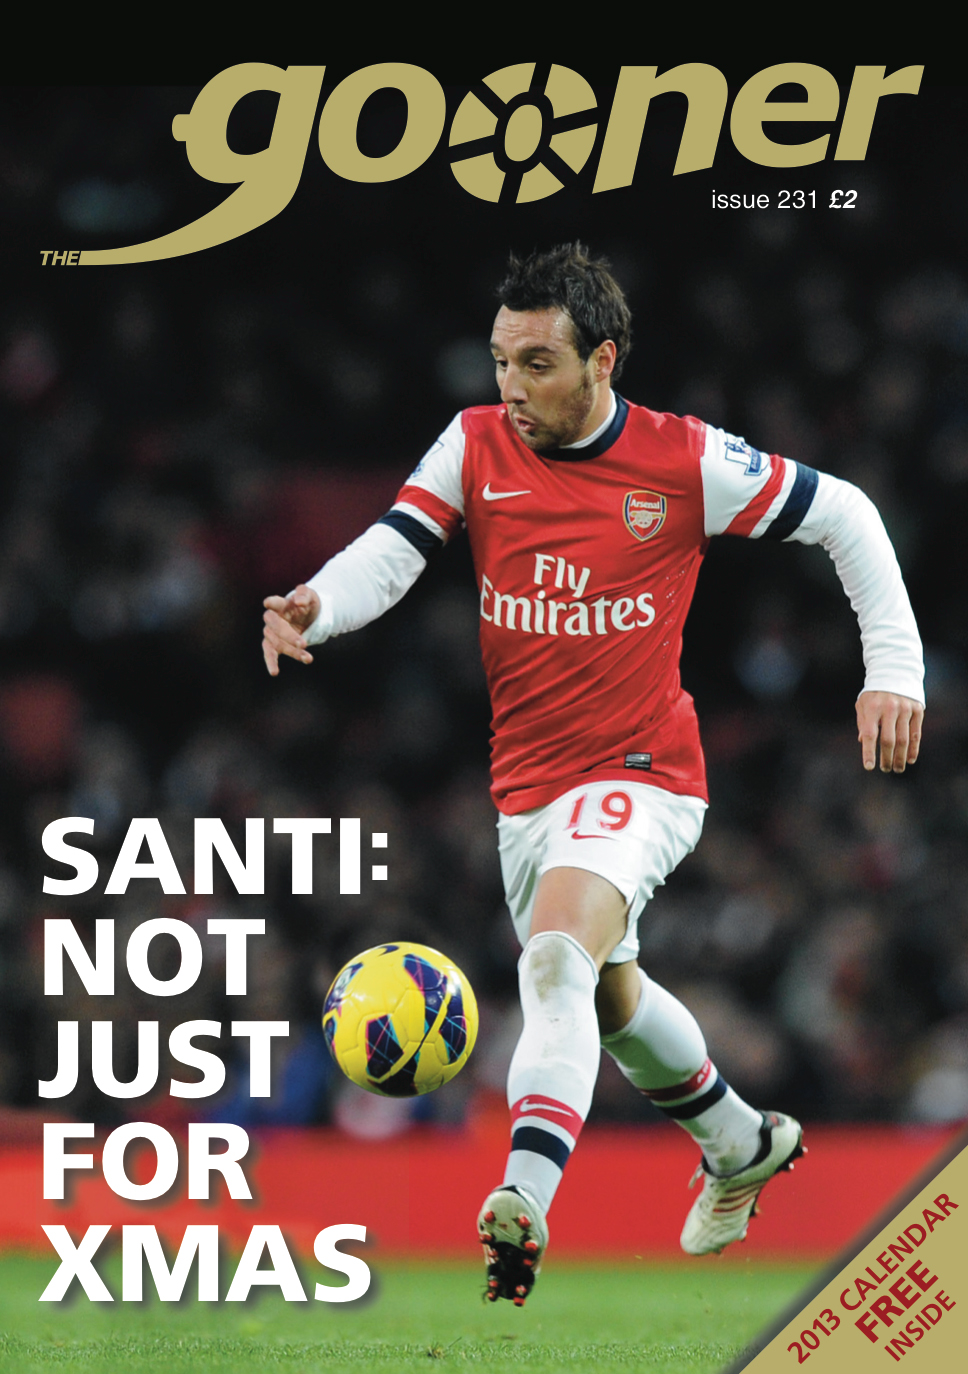 The Gooner - Issue 231